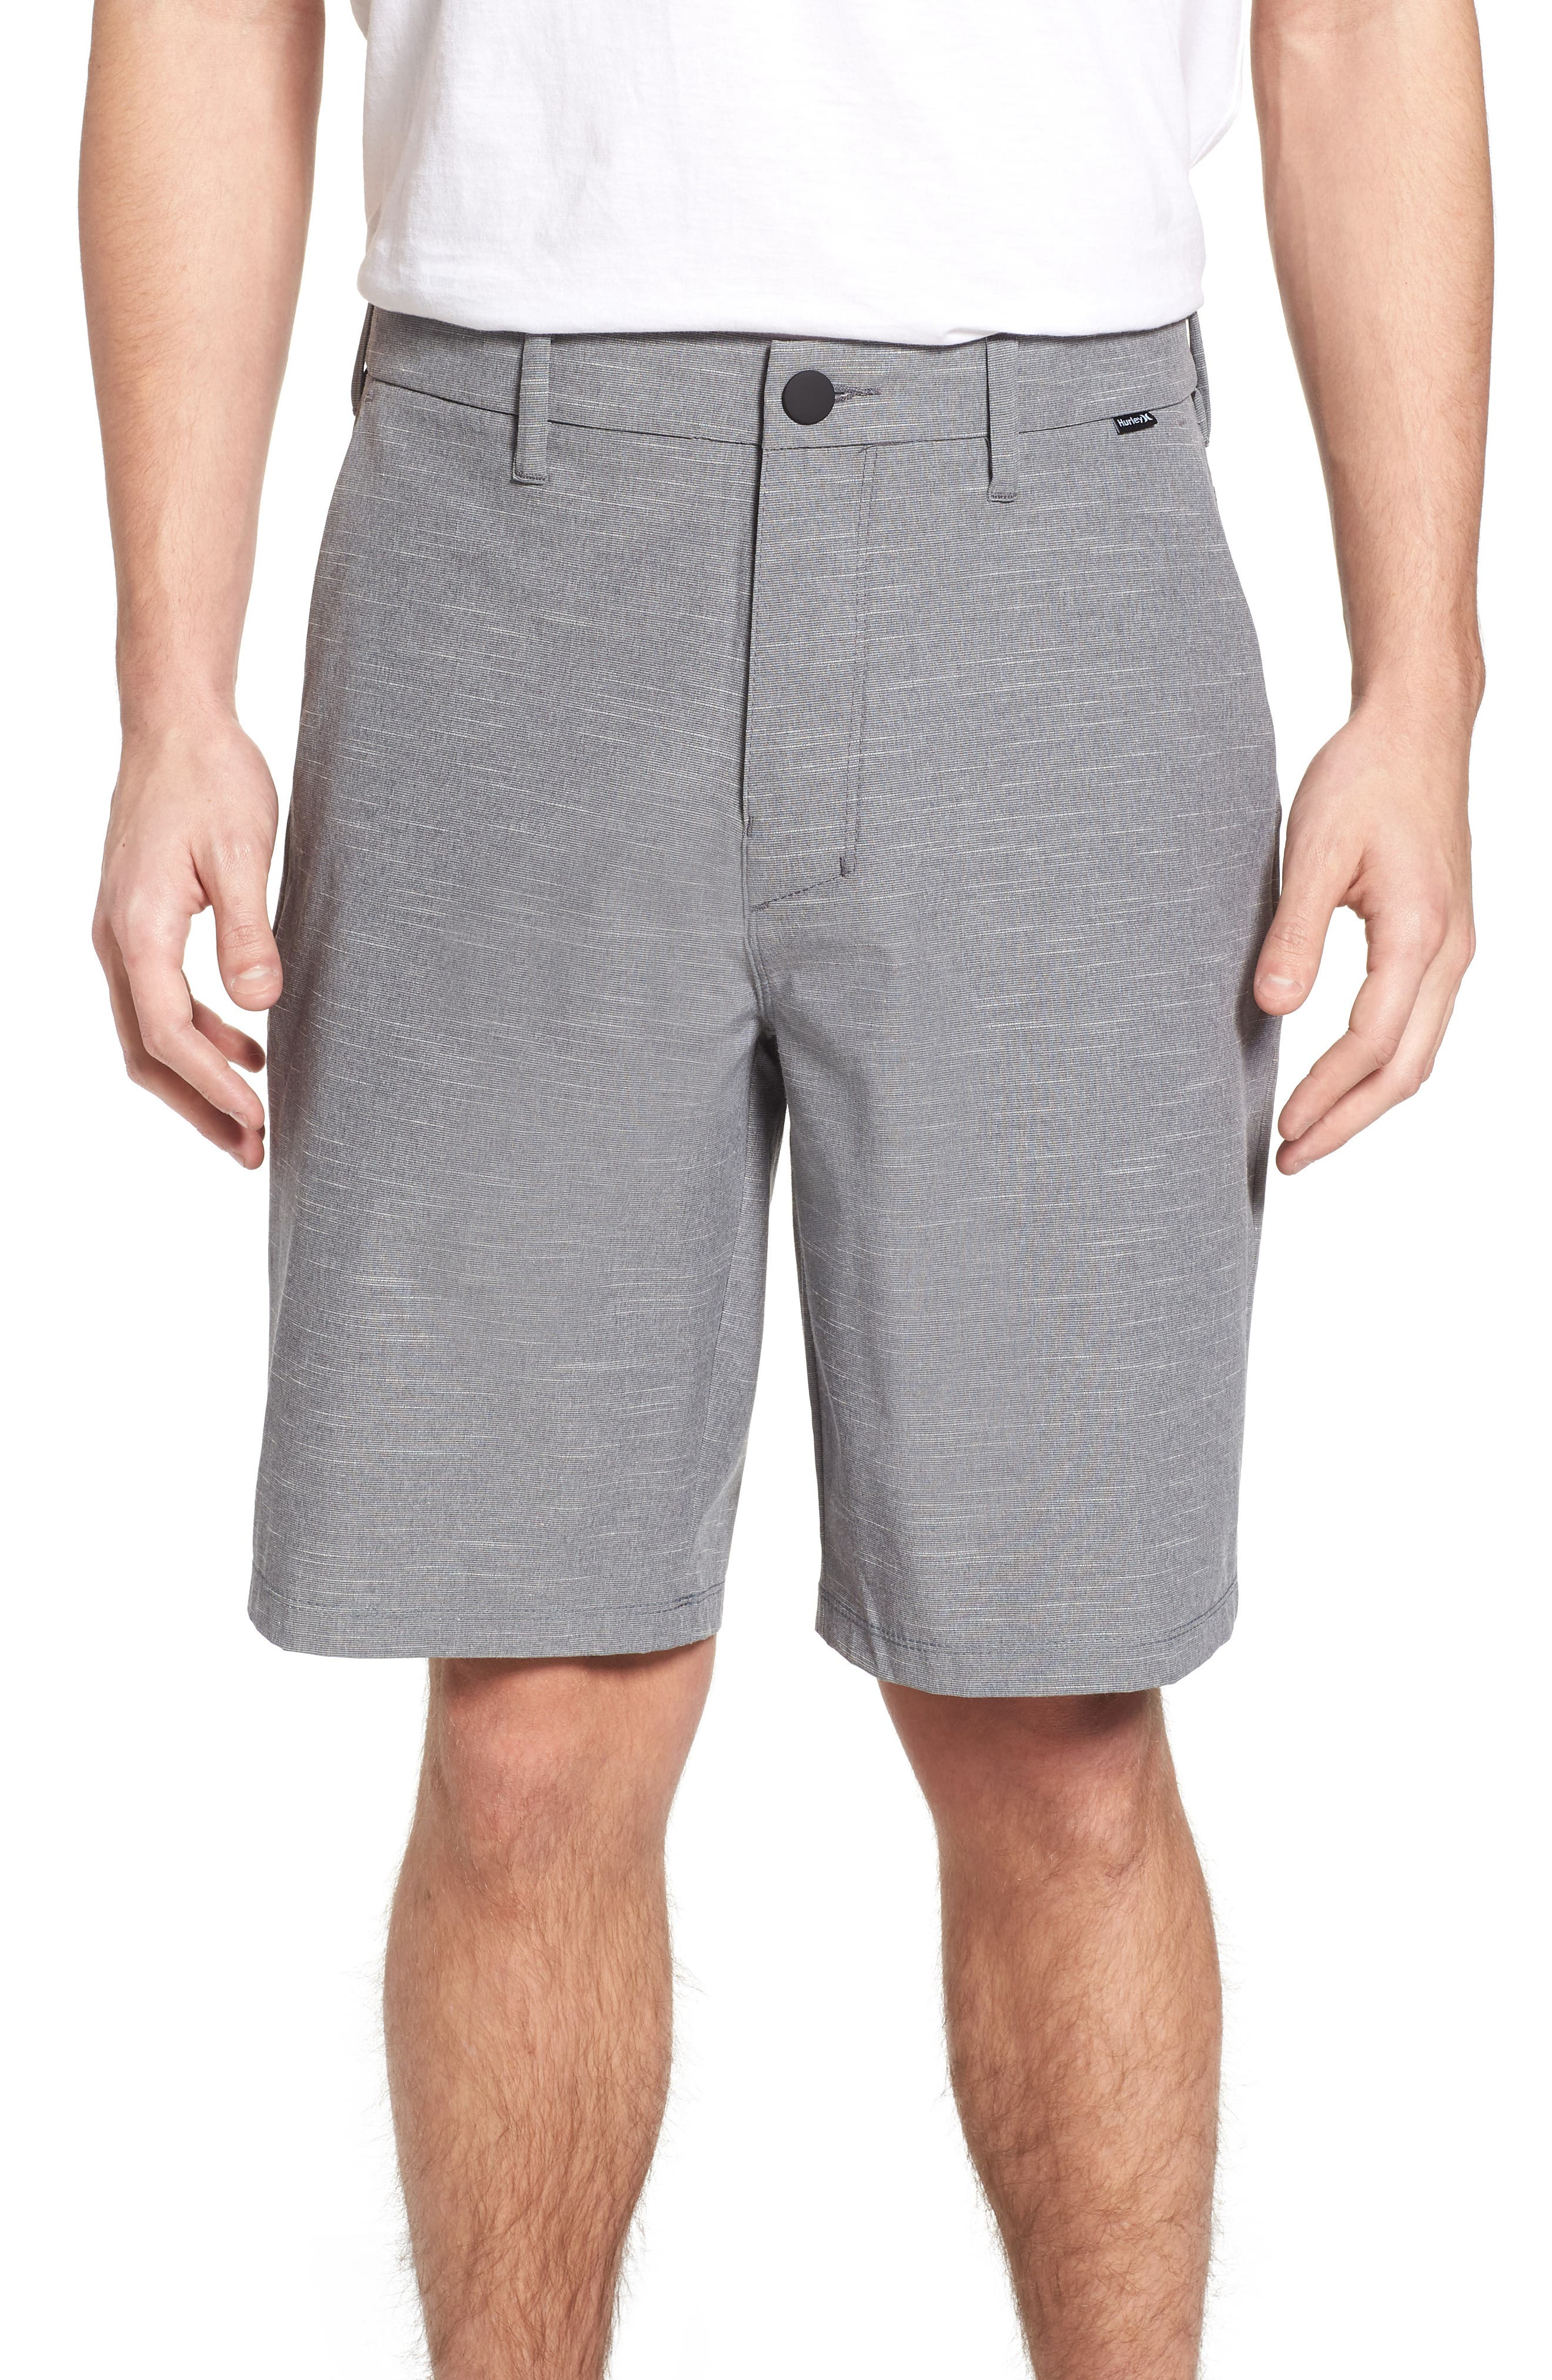 Hurley Phantom Jetty Board Shorts